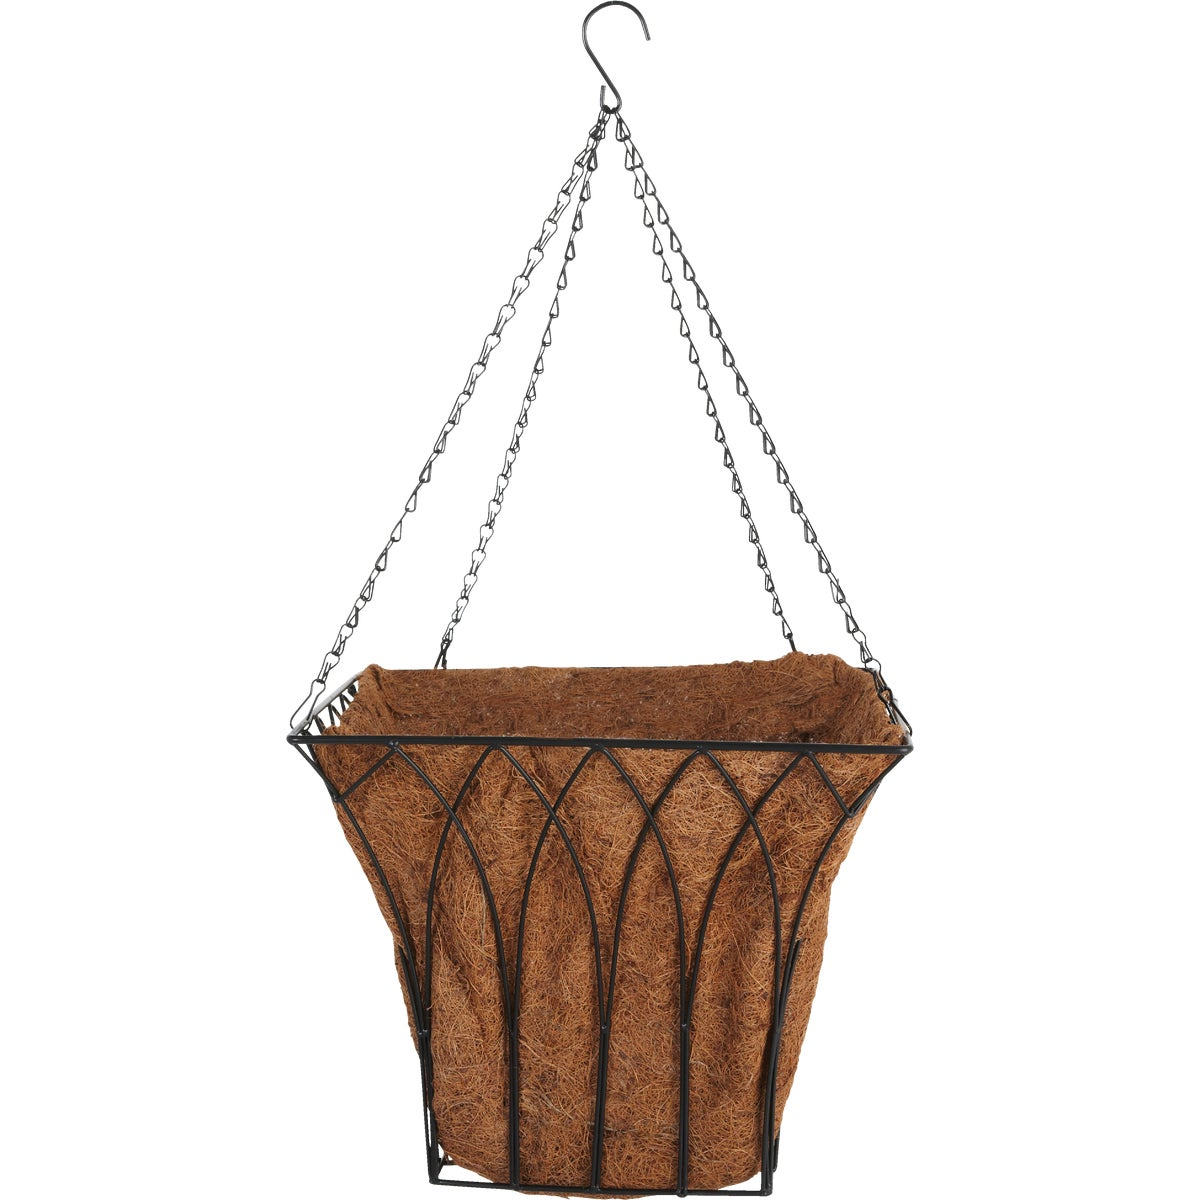 "14"" W/LNR HANGING BASKET - HB141411 by Do it Best"